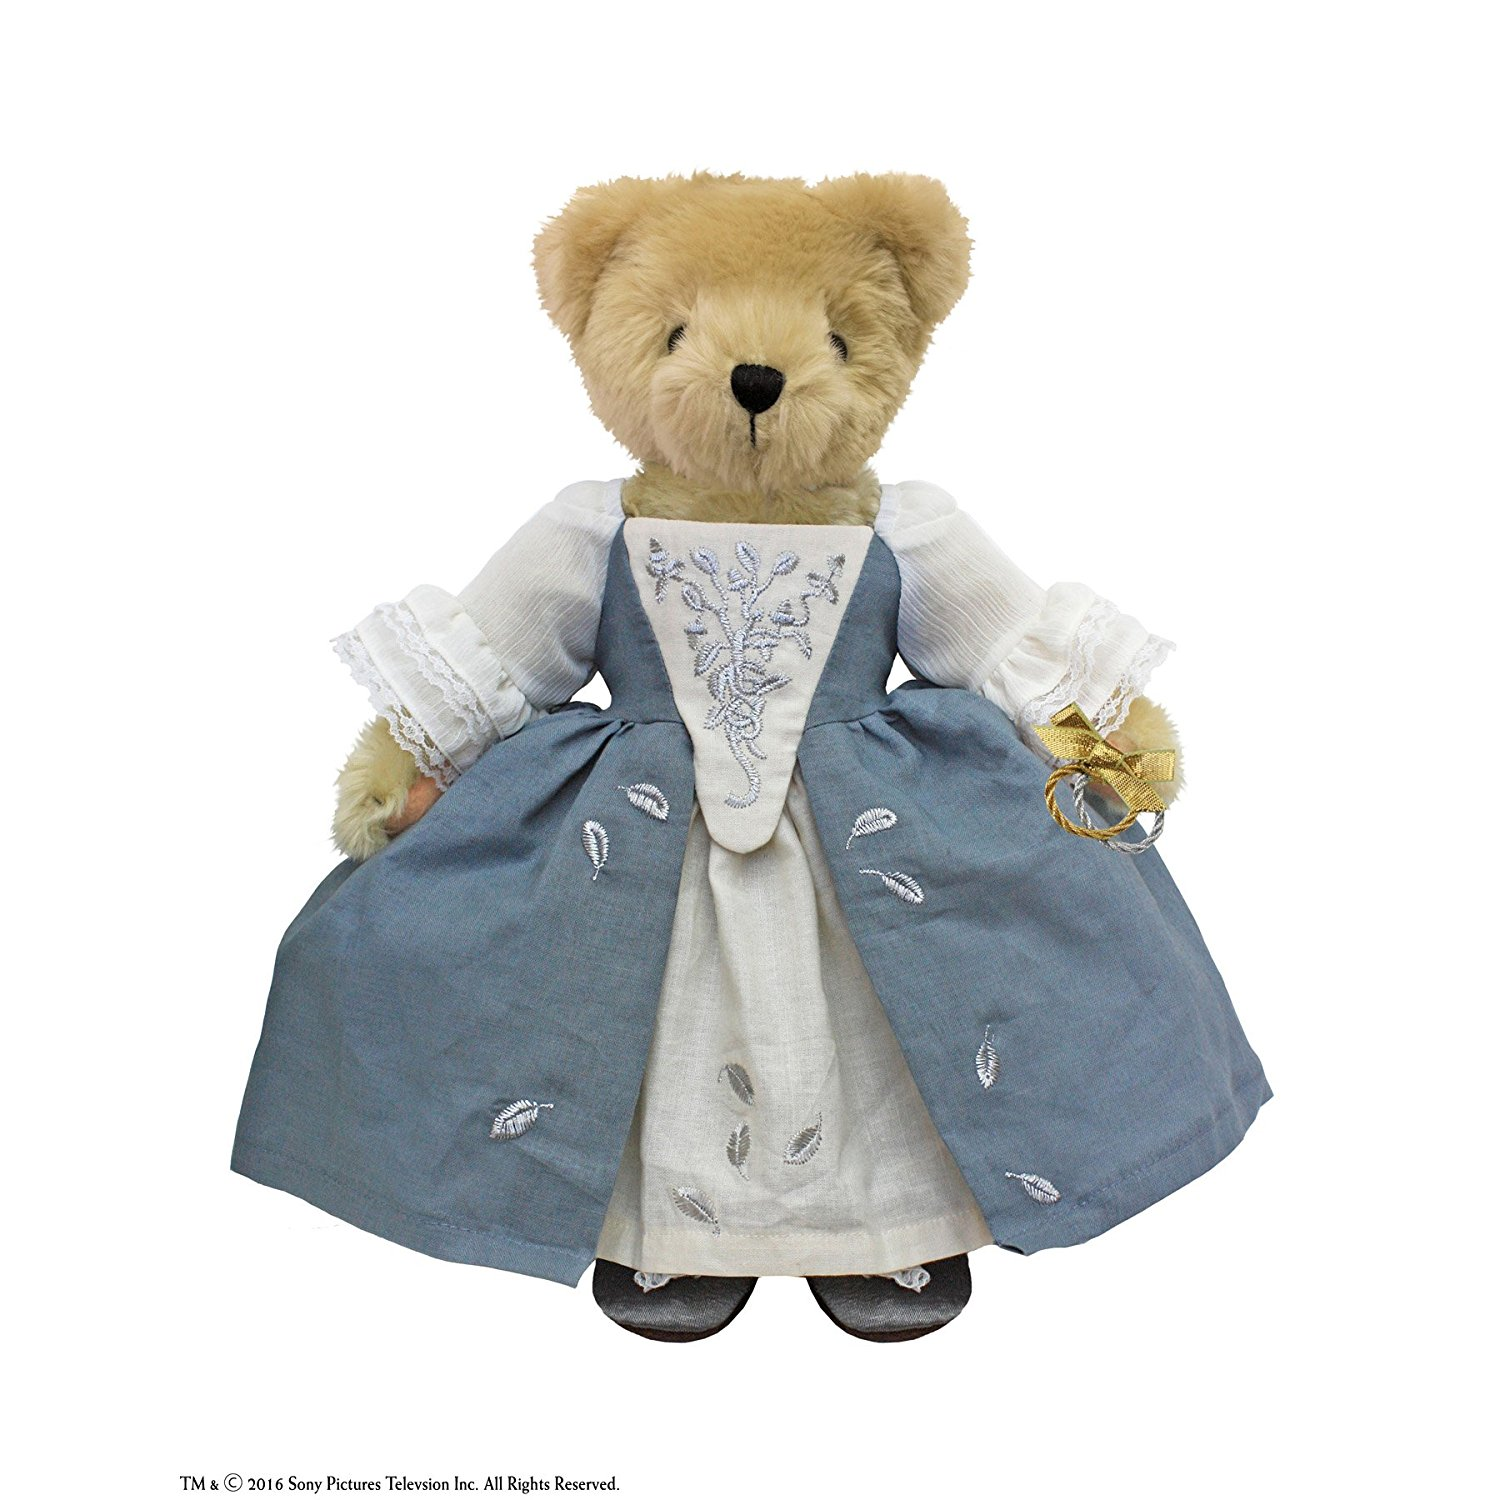 North American Bear Outlander Claire Fraser The Wedding Teddy Bear Collection by